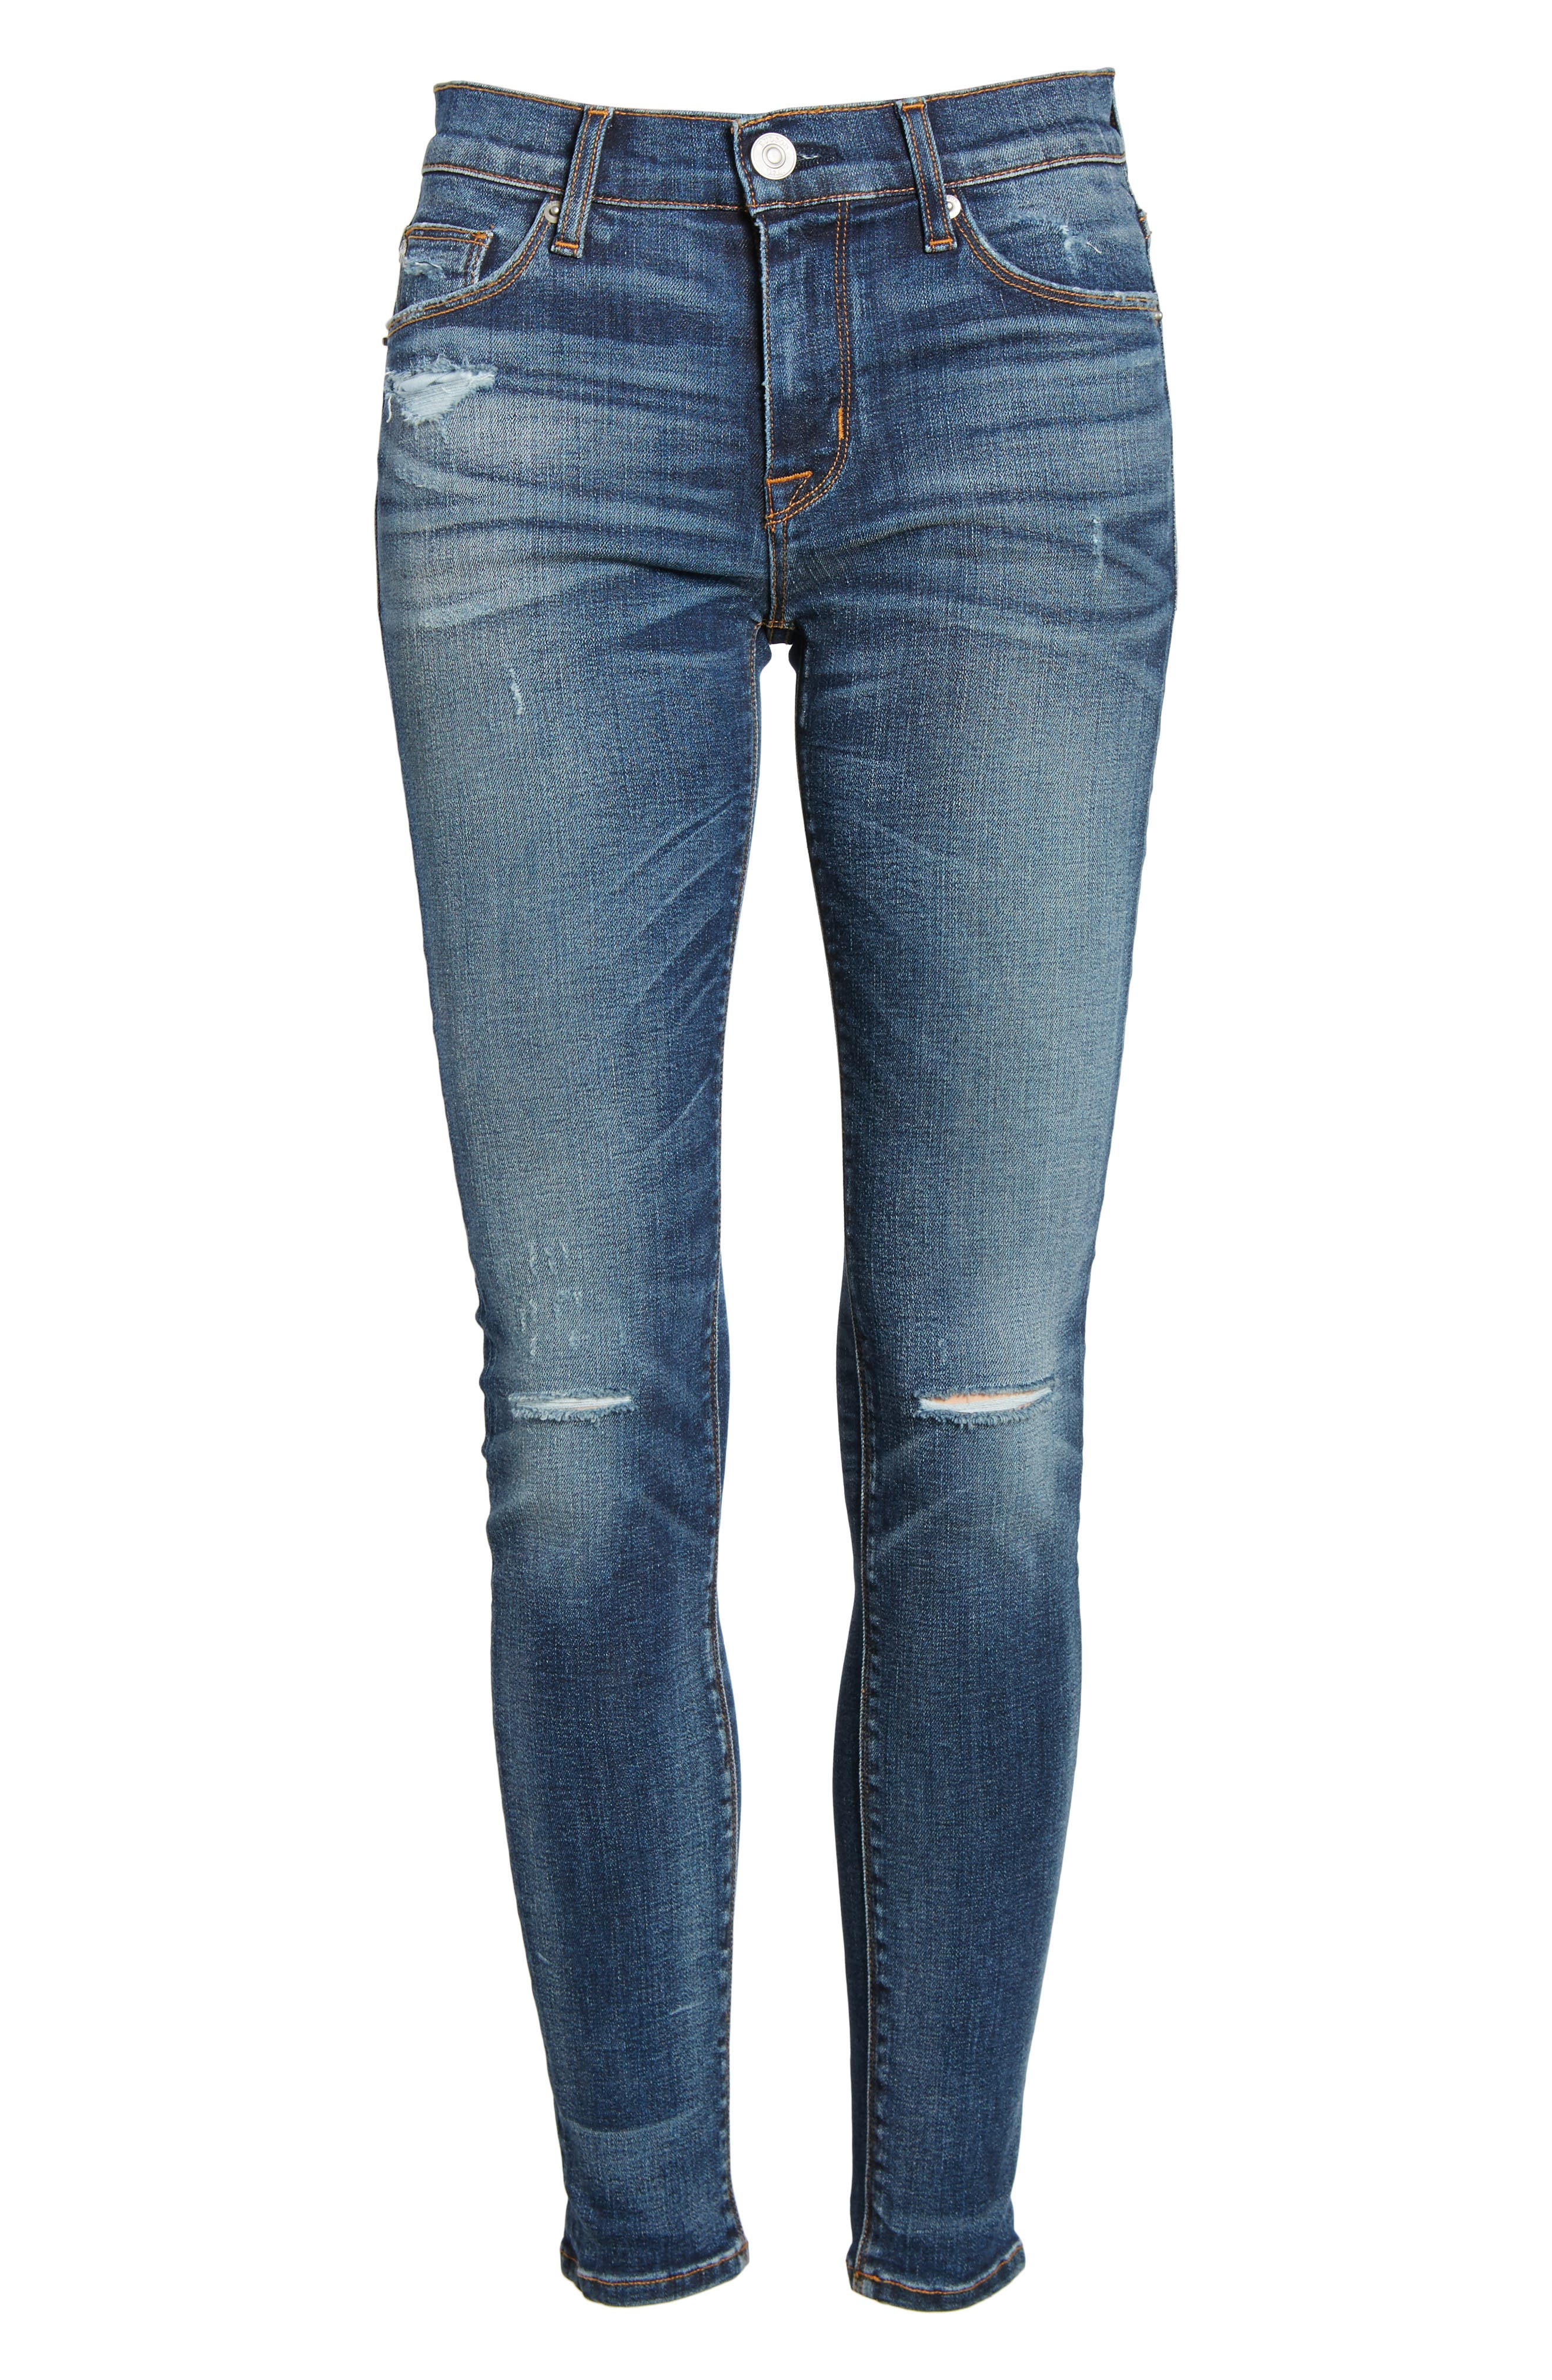 Nico Ankle Super Skinny Jeans,                             Alternate thumbnail 7, color,                             CONFESSION